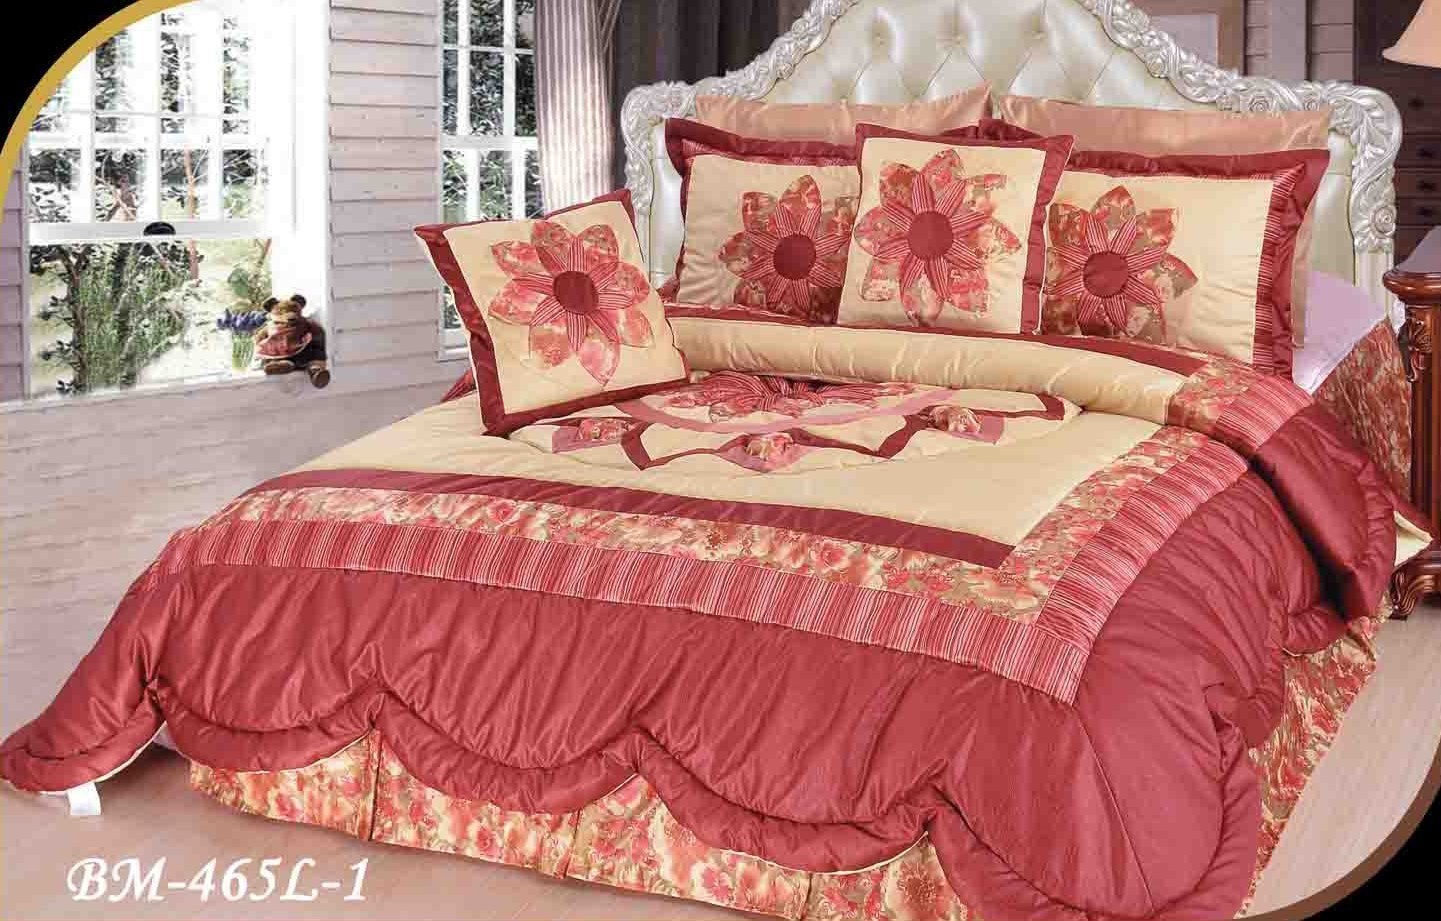 DaDa Bedding Embellished Ruffles Solar Rubies Coverlet Bedspread Comforter Set - Bordered Bright Vibrant Colorful Red & Creme Floral Medallion Print - Cal King - 5-Pieces